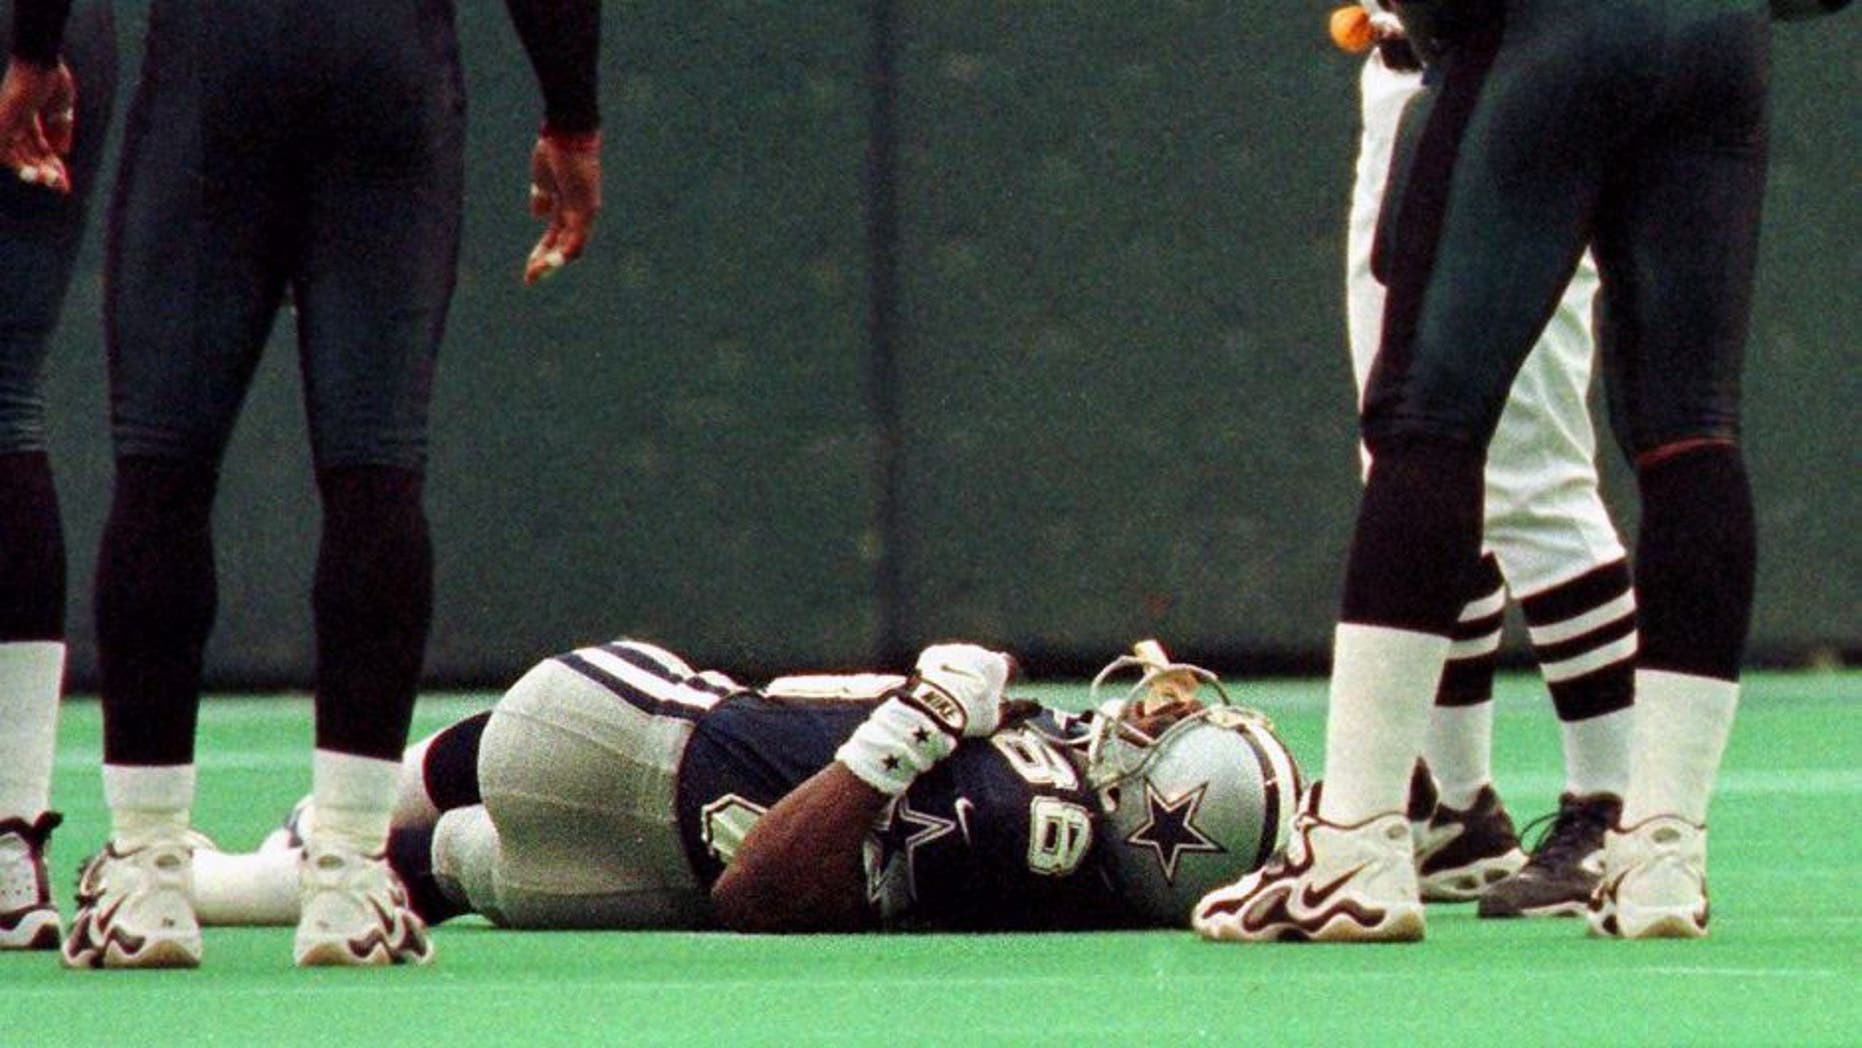 PHILADELPHIA, : Dallas Cowboys player Michael Irvin (C)is on the ground after being injured on a pass play in the first quarter of their game against the Philadelphia Eagles 10 October 1999 in Philadelphia. Standing near Irvin are Eagles players Brian Dawkins (L) and William Thomas (R). Irvin was taken out of the game and to a local hospital for evaluation. The Eagles won 13-10. AFP PHOTO/ TOM MIHALEK (Photo credit should read TOM MIHALEK/AFP/Getty Images)